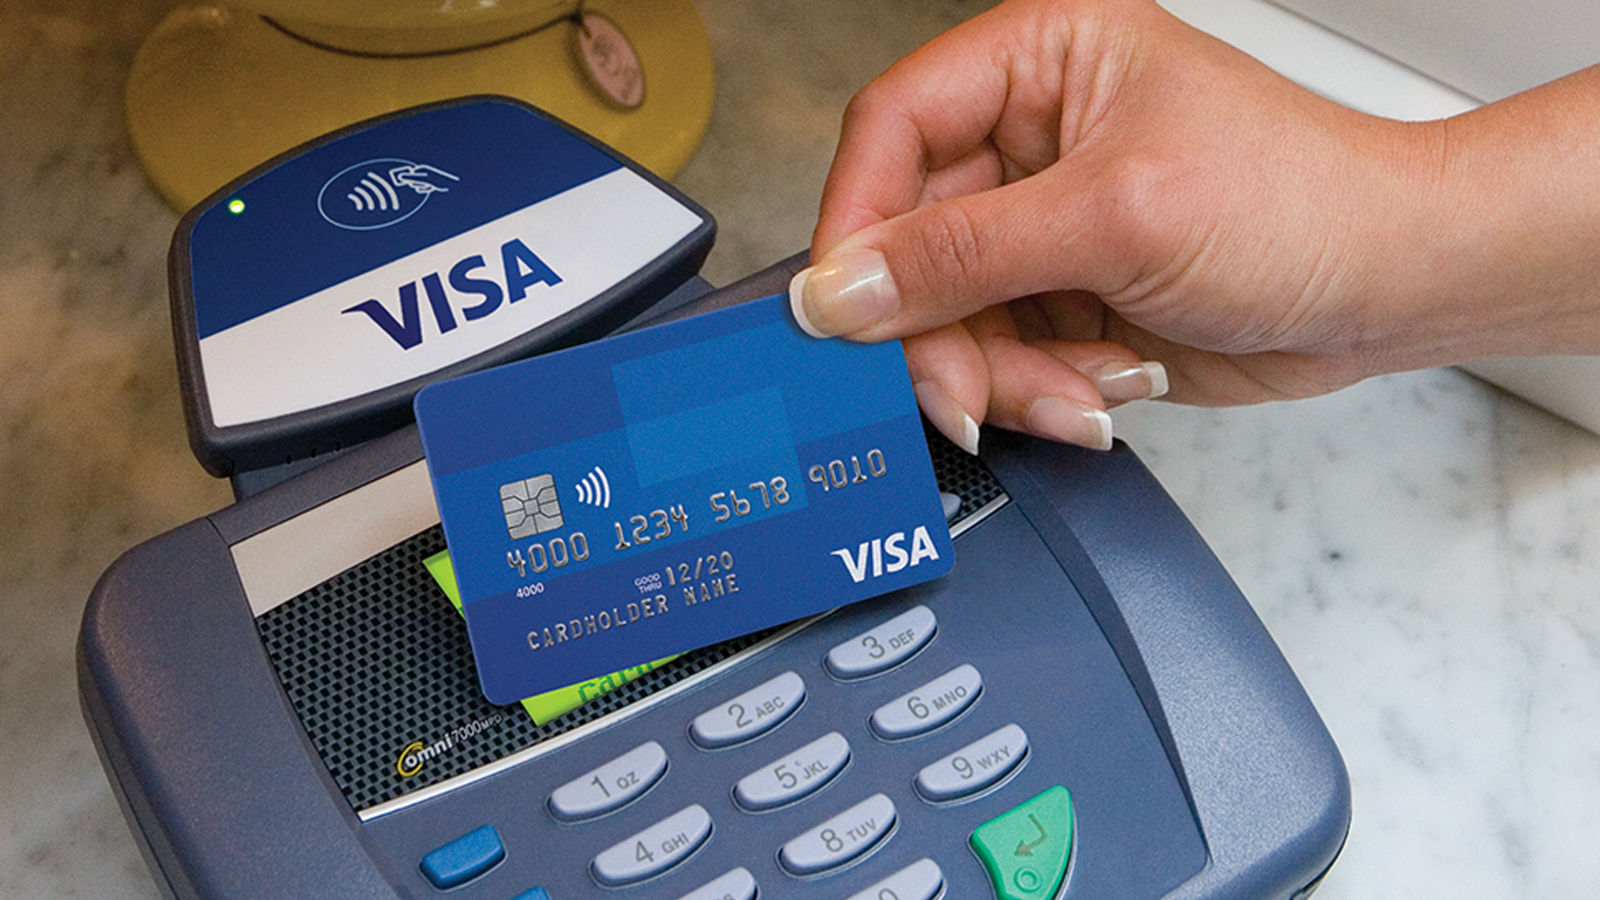 card-paywave-transaction-1600x900